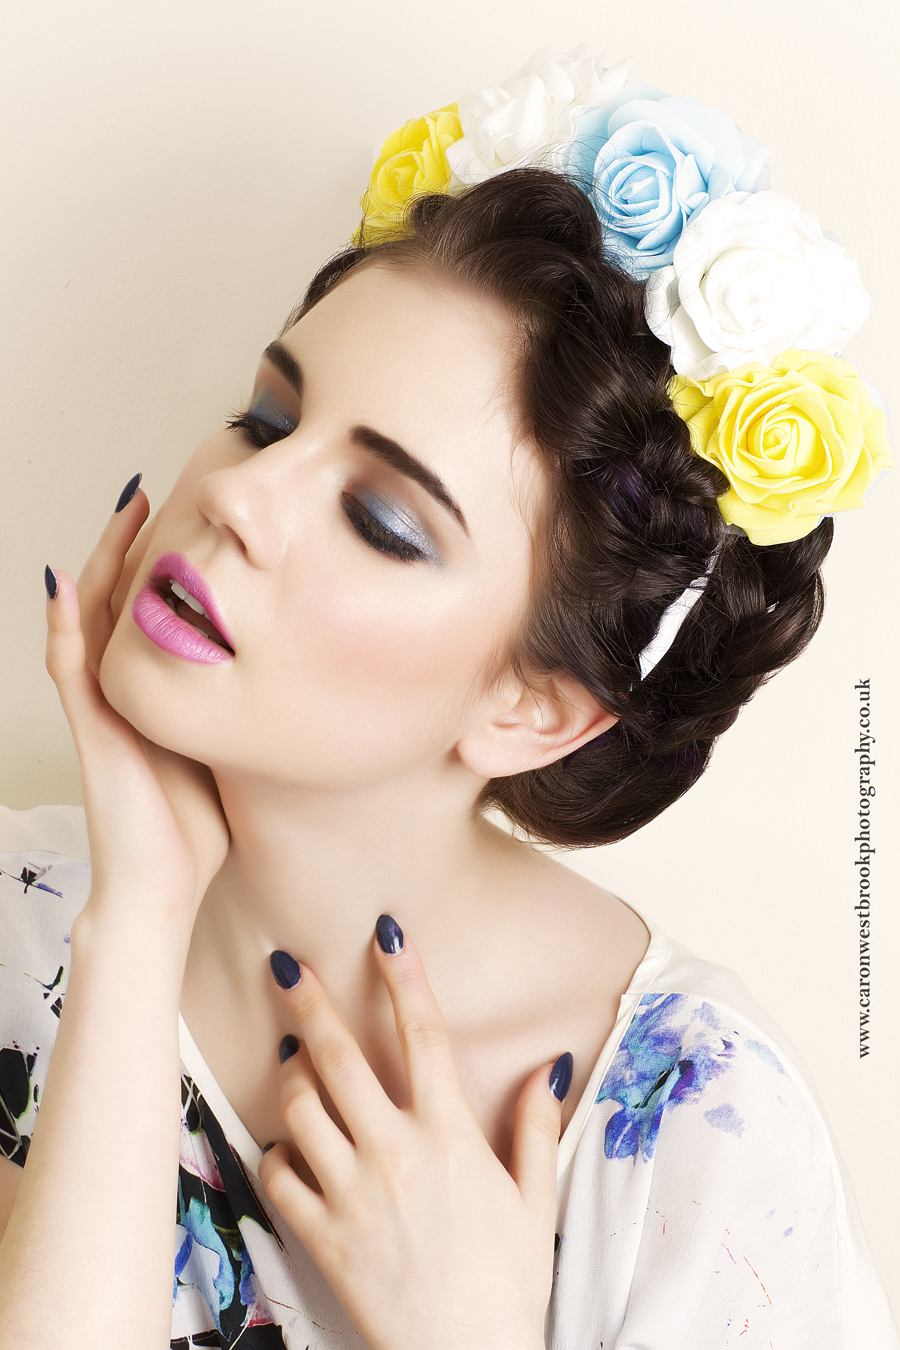 Beauty Shoot - Products Used